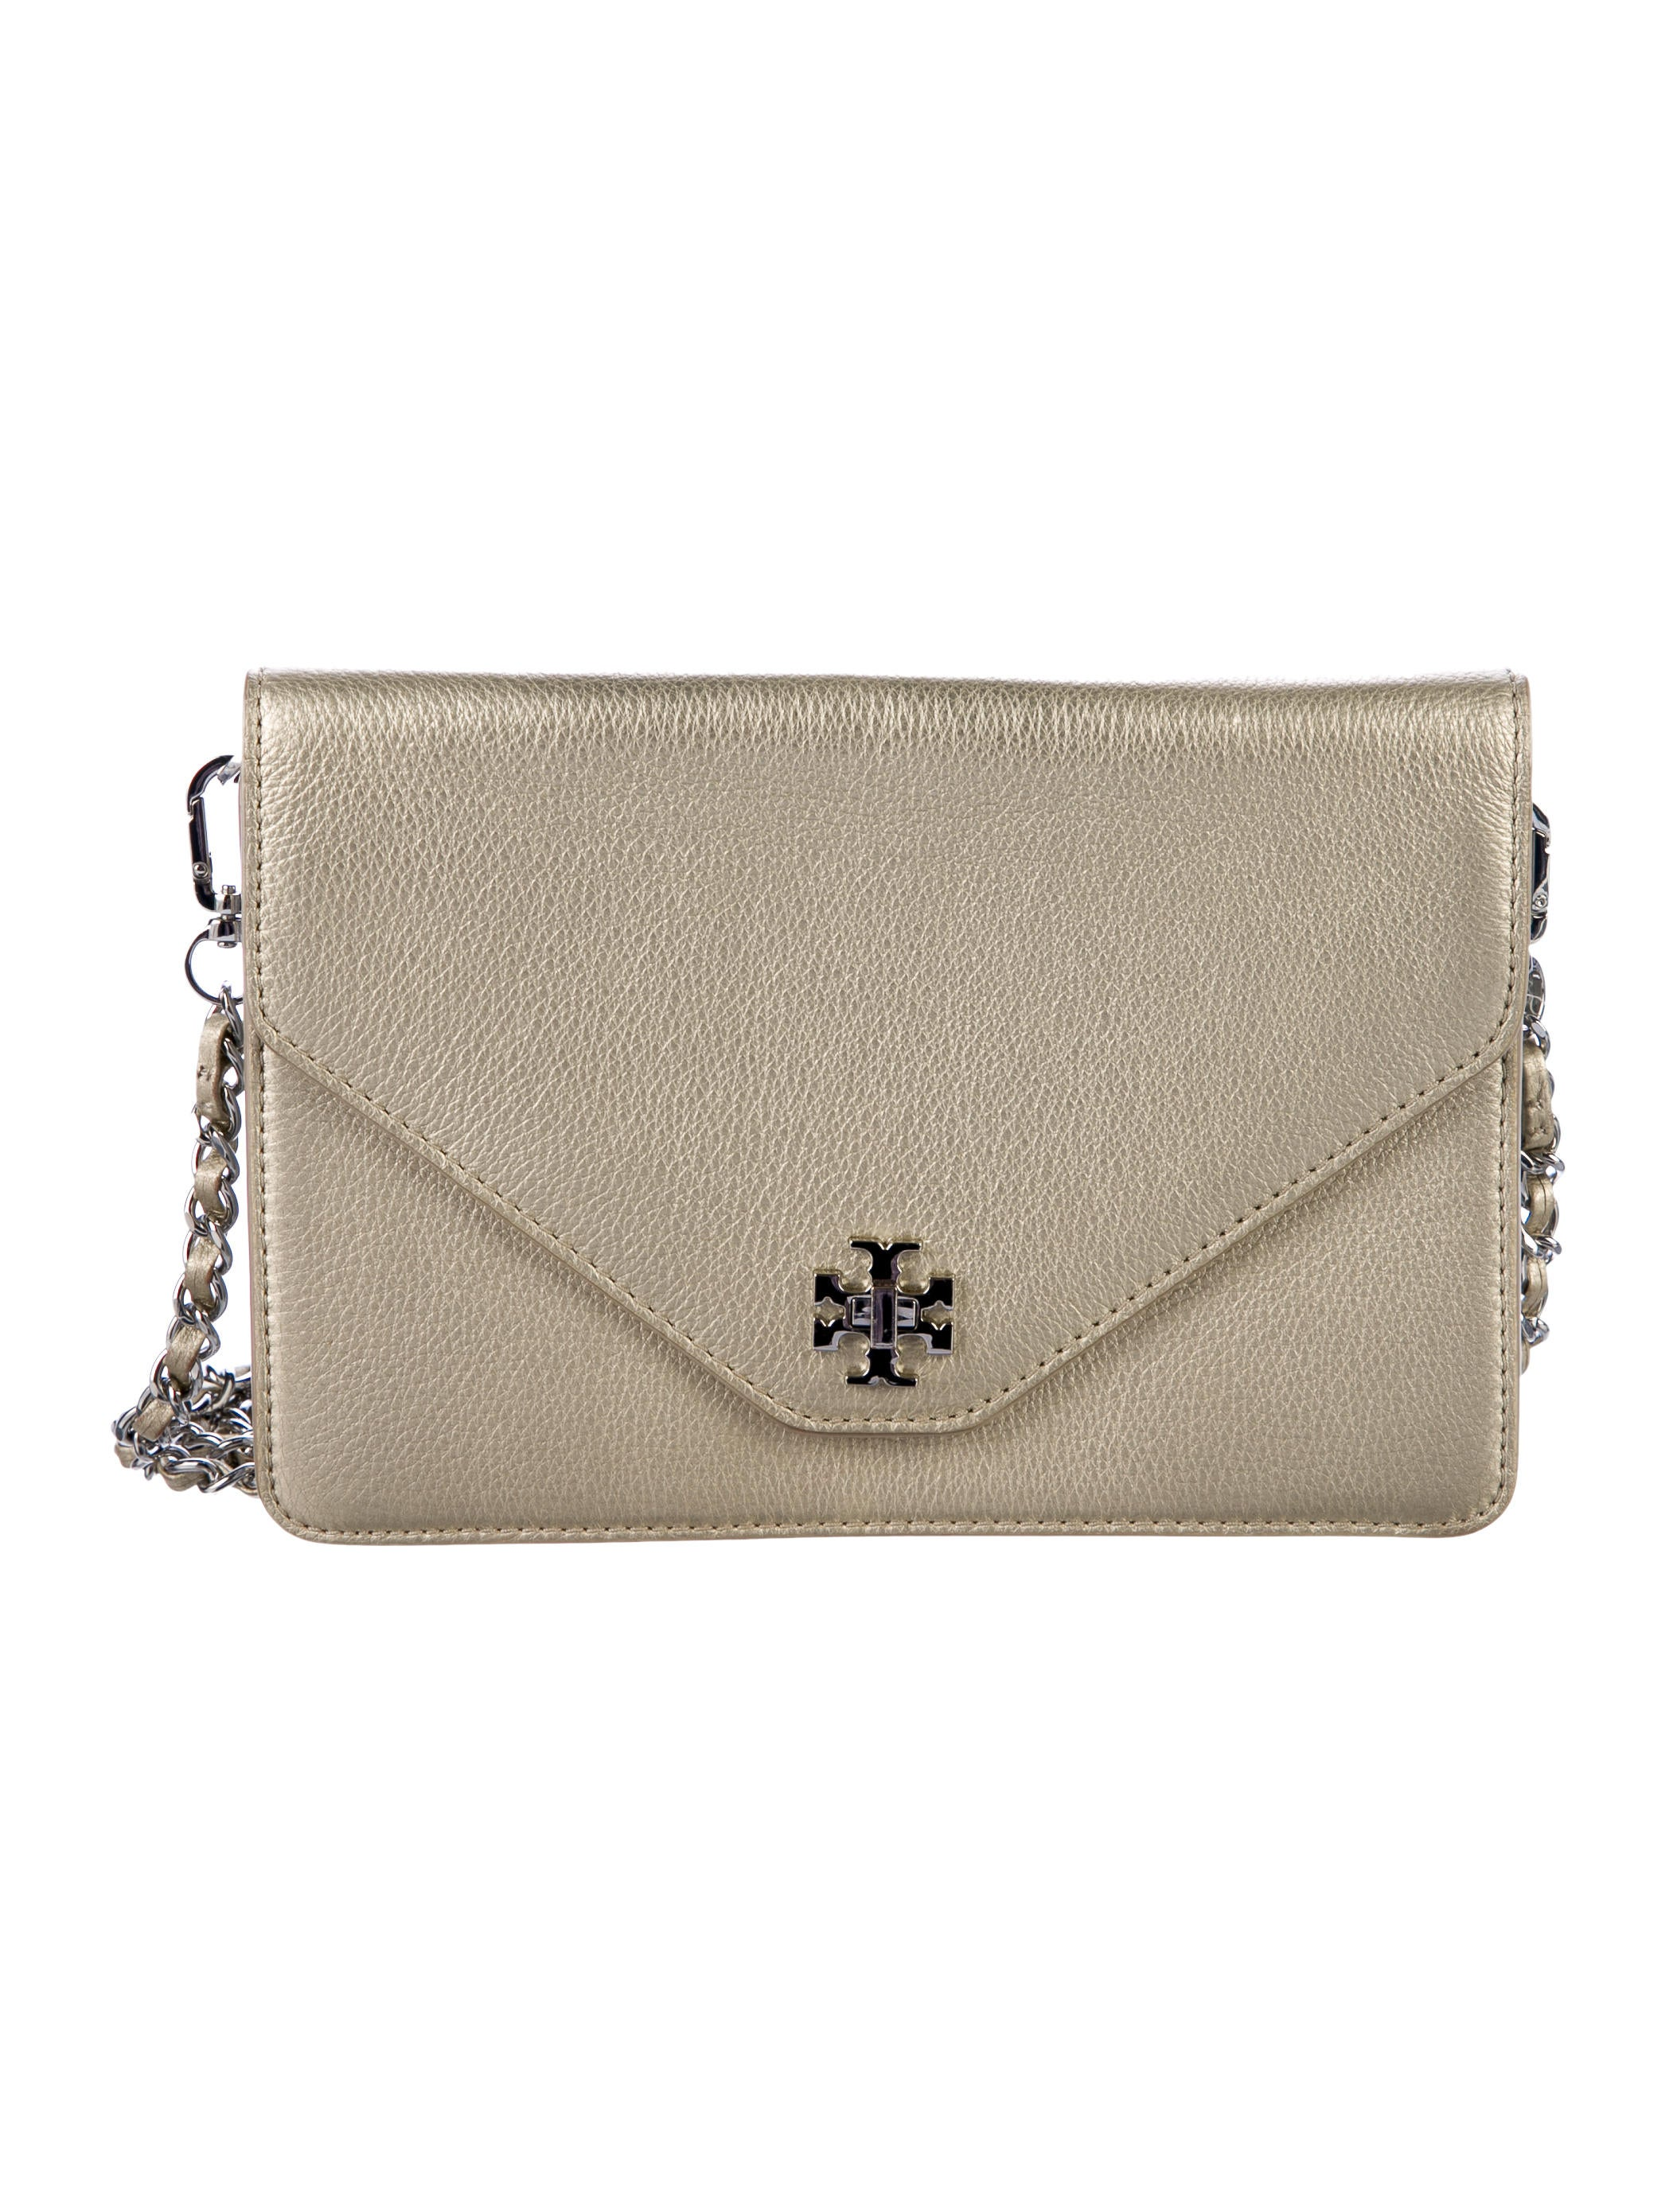 2d2fdc298b8 Tory Burch Metallic Kira Crossbody Bag - Handbags - WTO119190